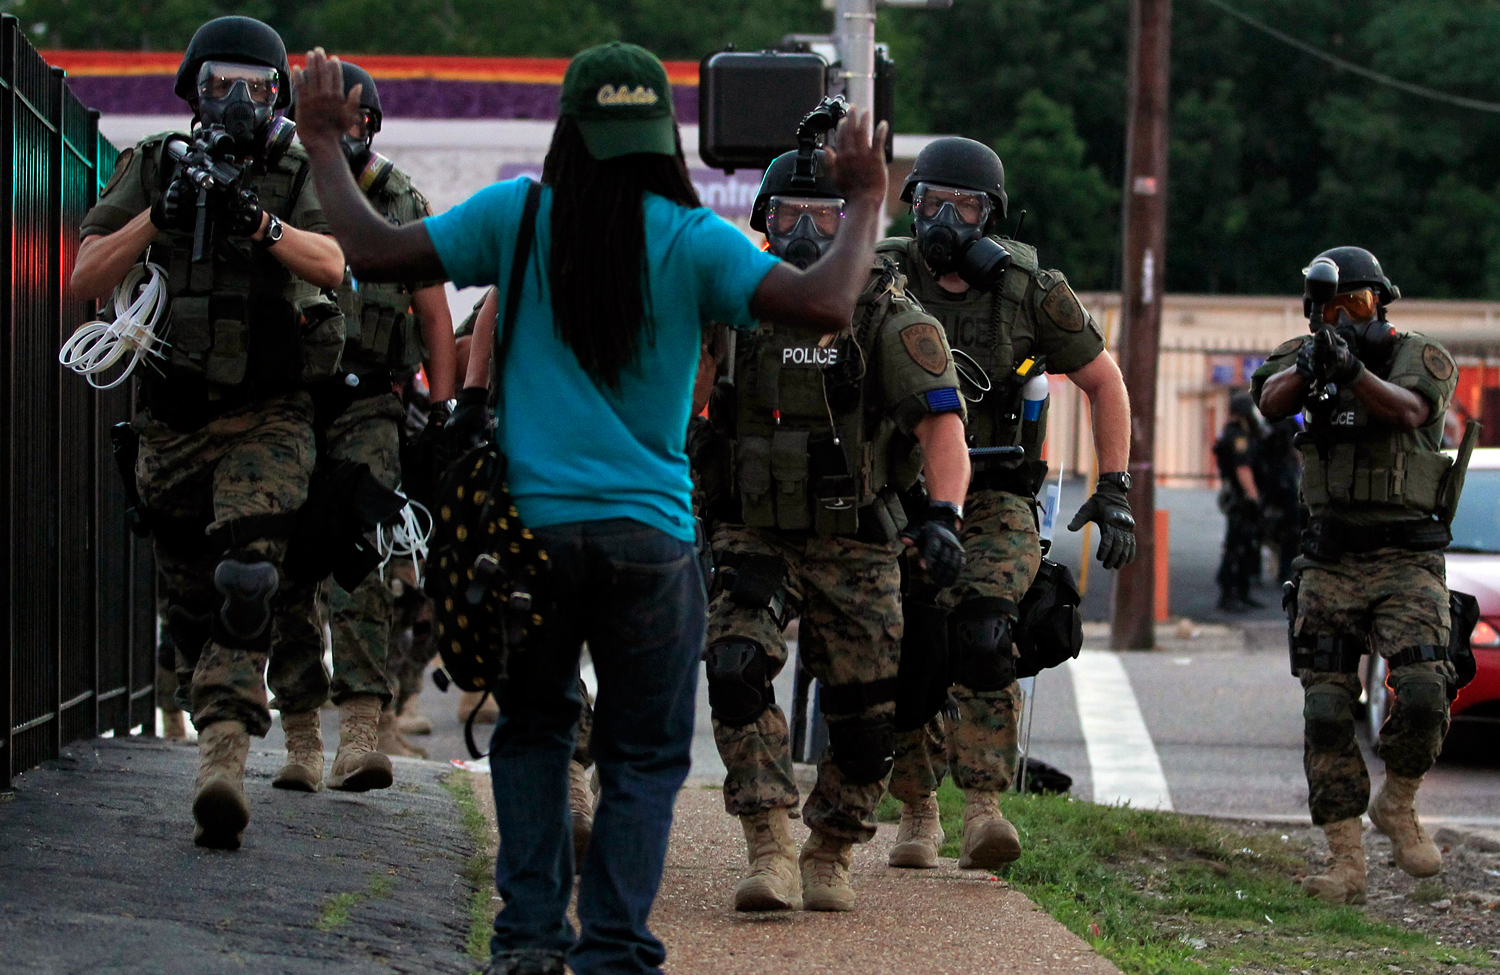 Police-wearing-riot-gear-walk-toward-a-man-with-his-hands-raised-in-Ferguson-MO